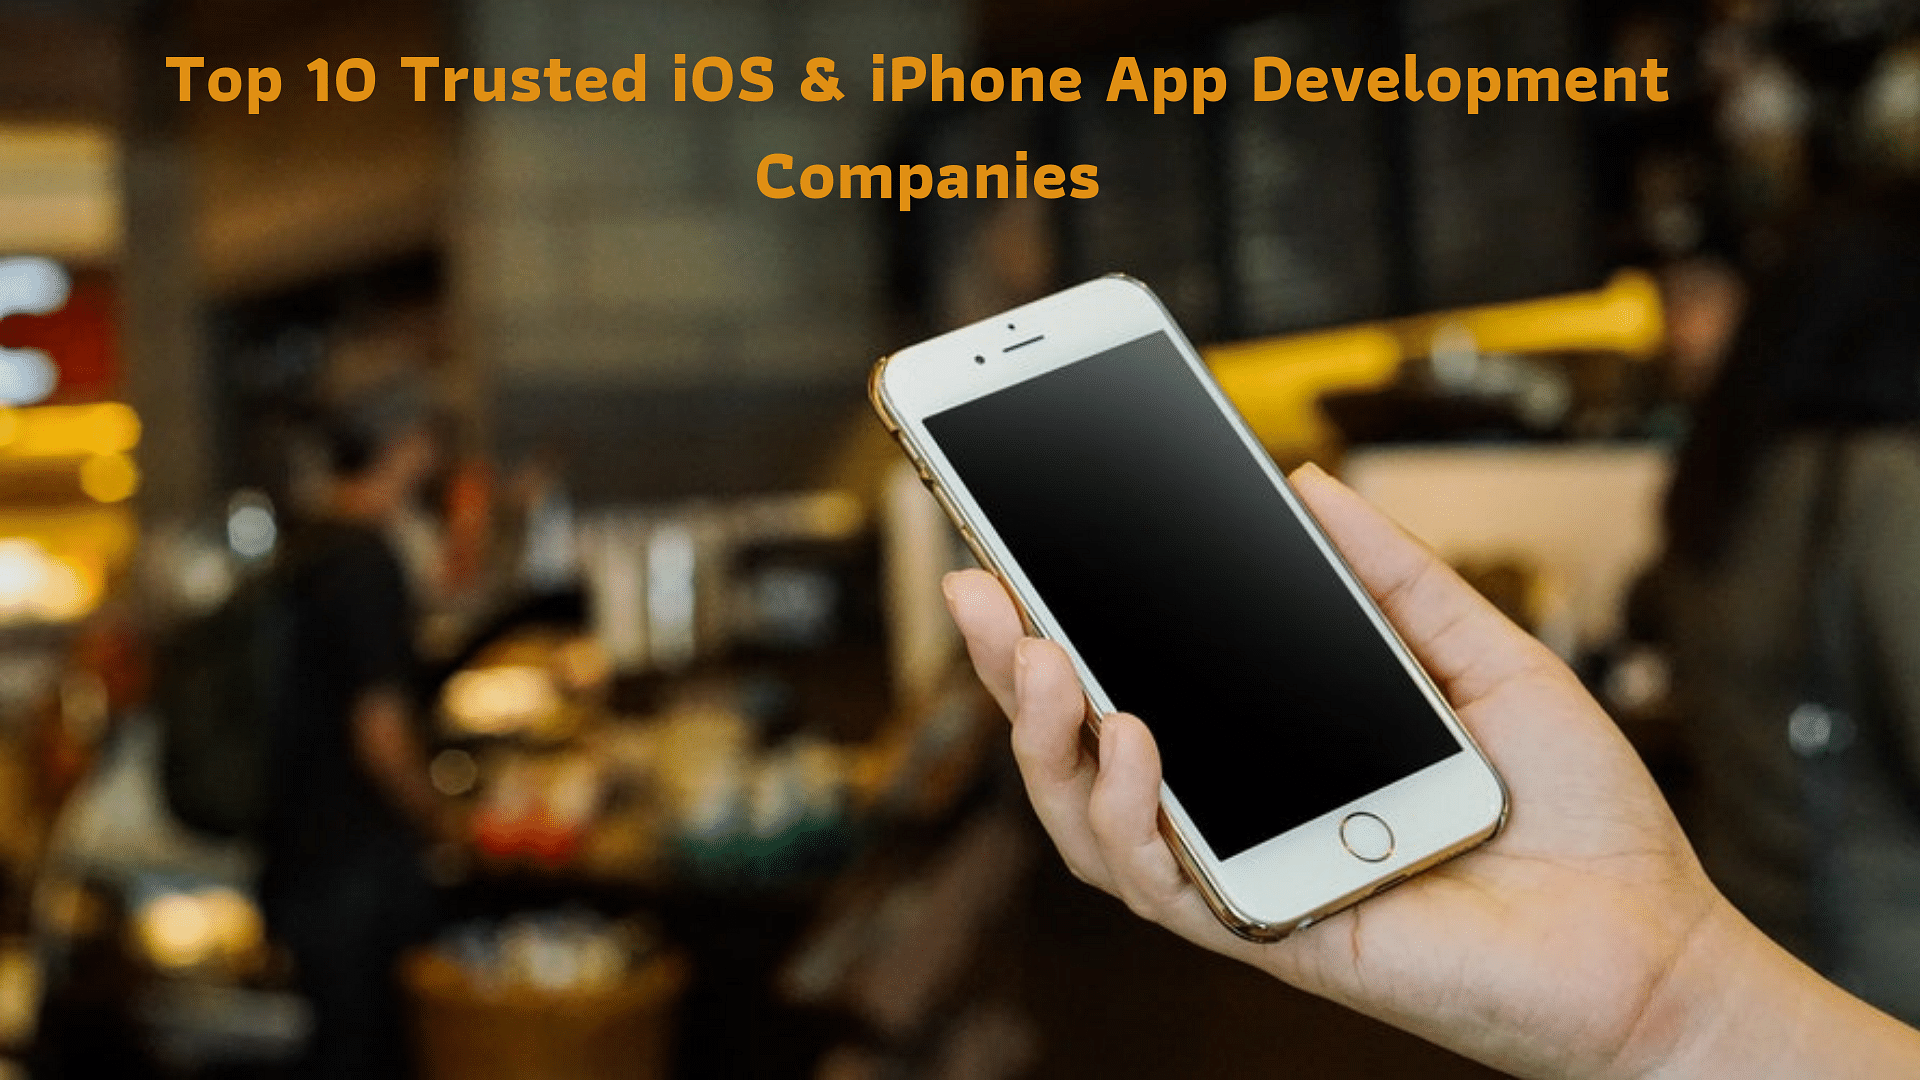 Top 10 Trusted iOS & iPhone App Development Companies